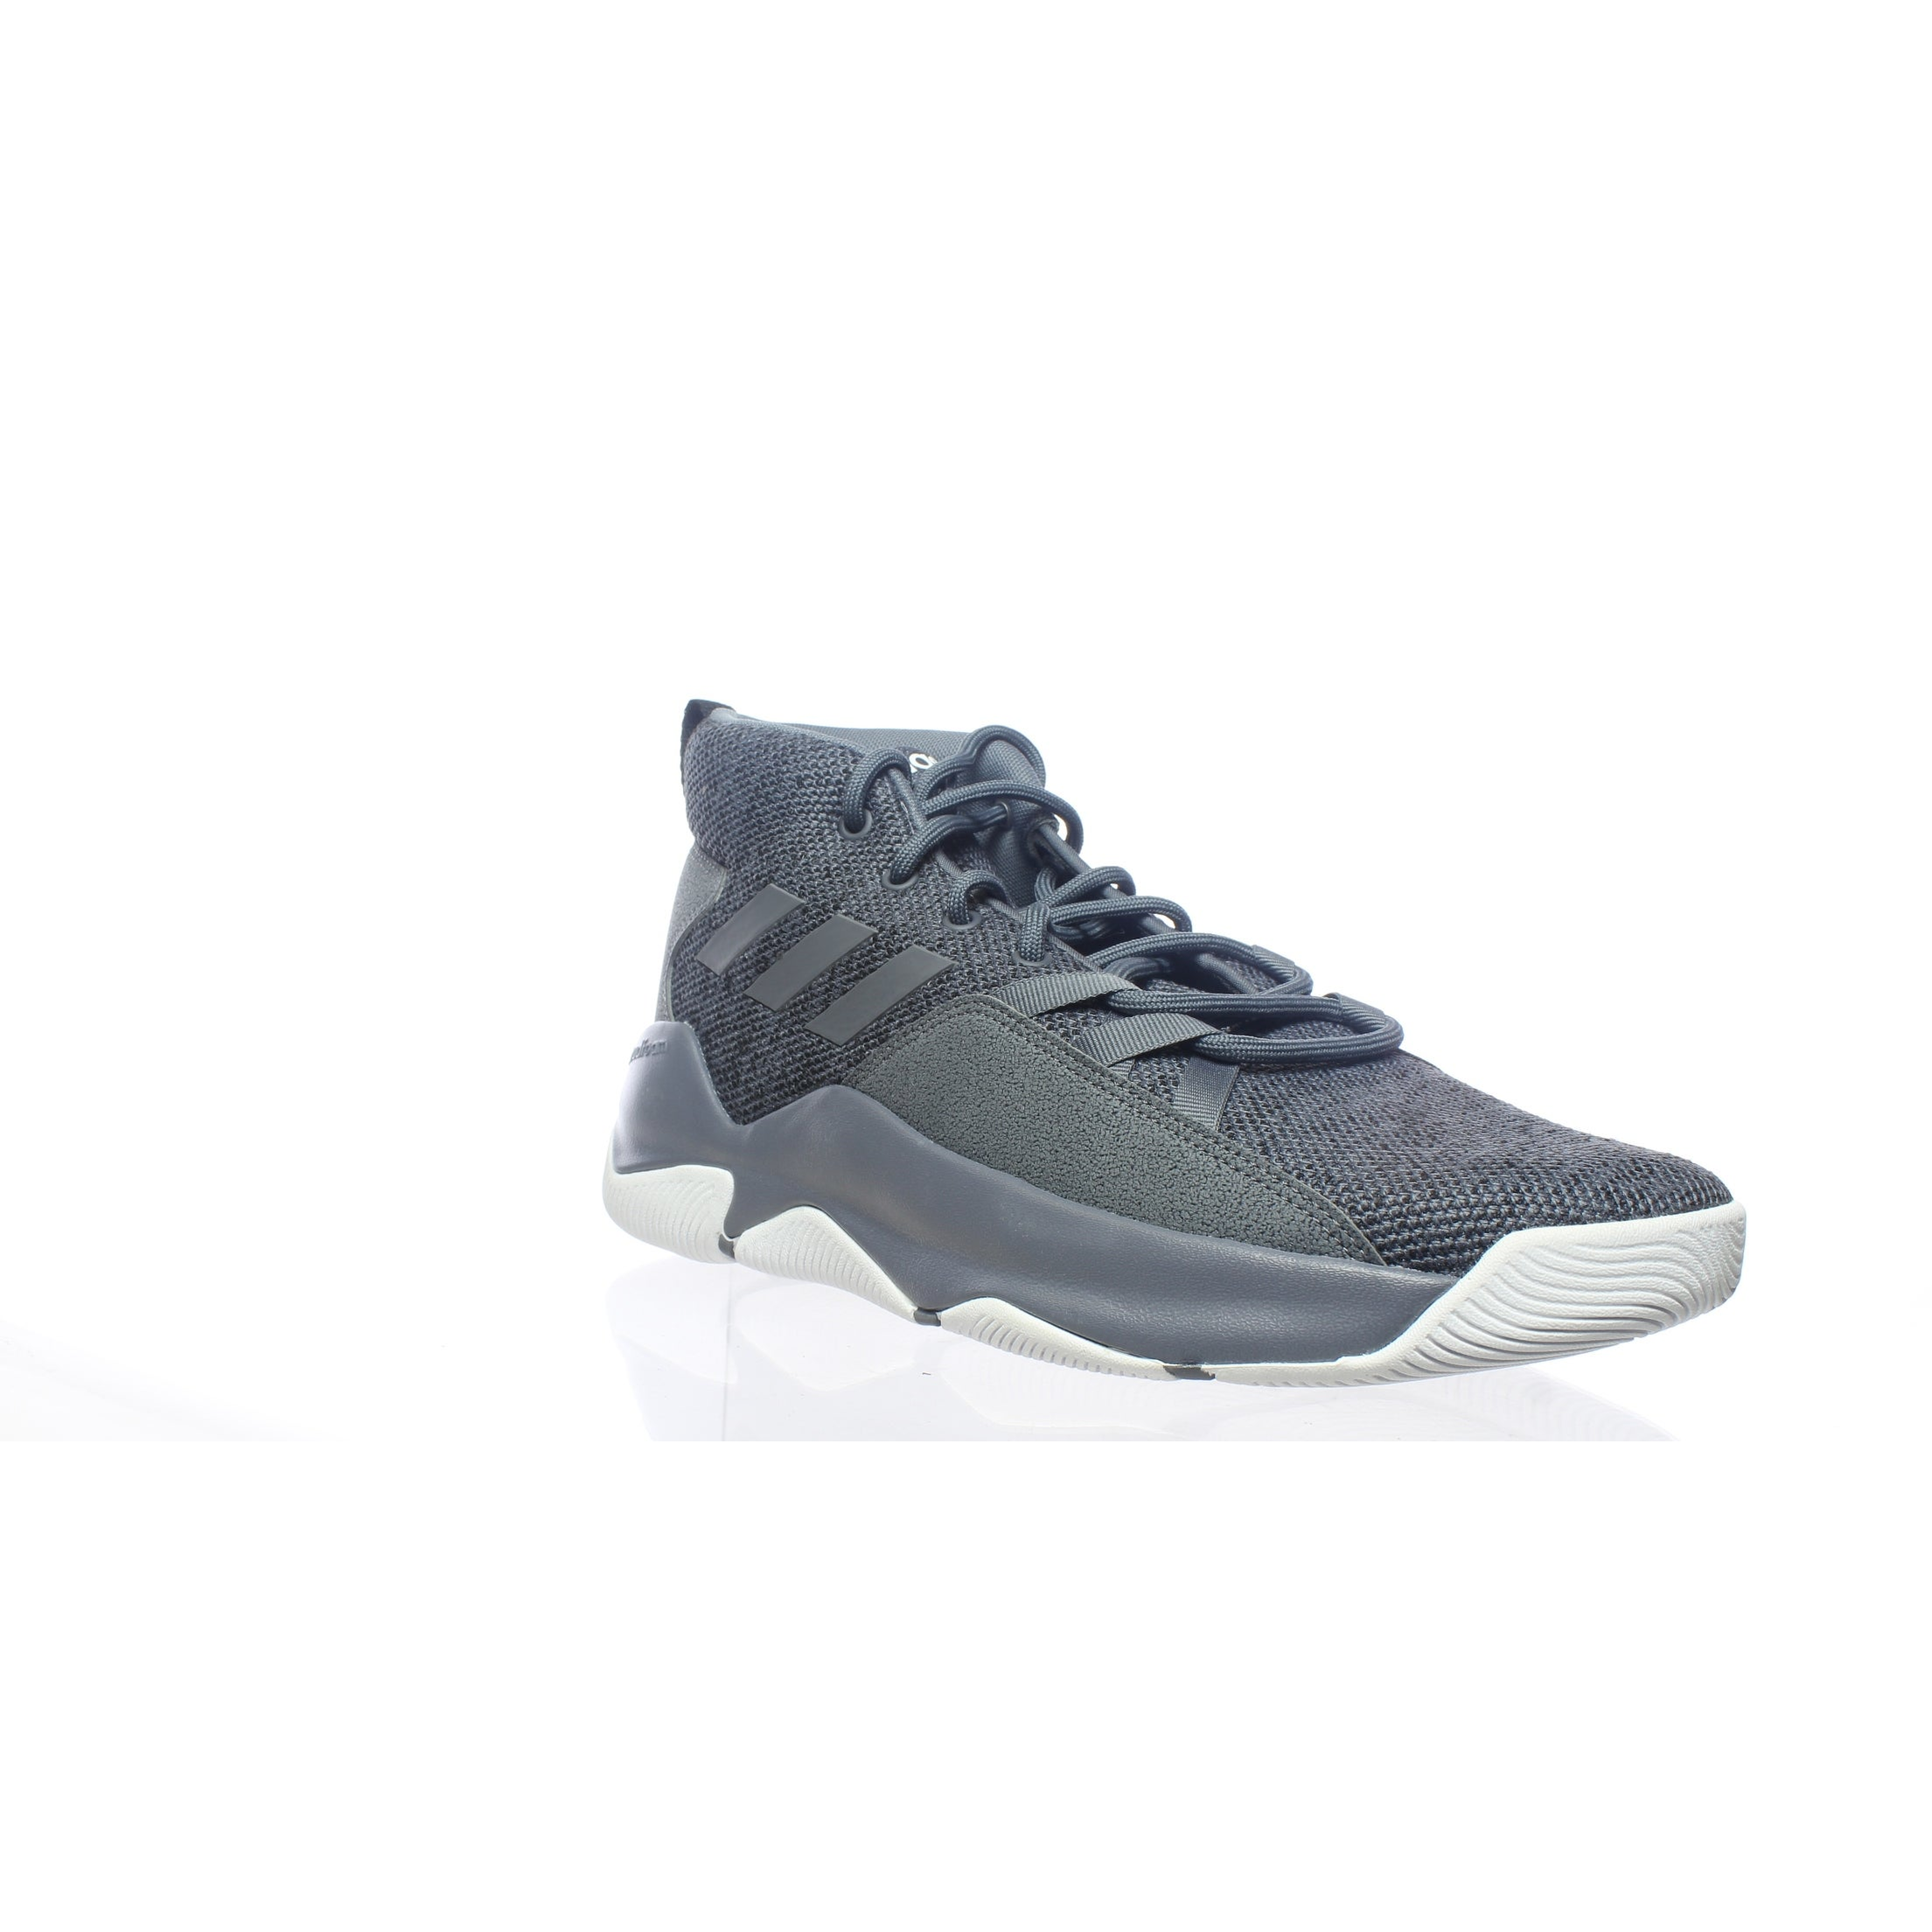 01d5211f673 Shop Adidas Mens Streetfire Gray Basketball Shoes Size 9.5 - Free Shipping  Today - Overstock - 27799276